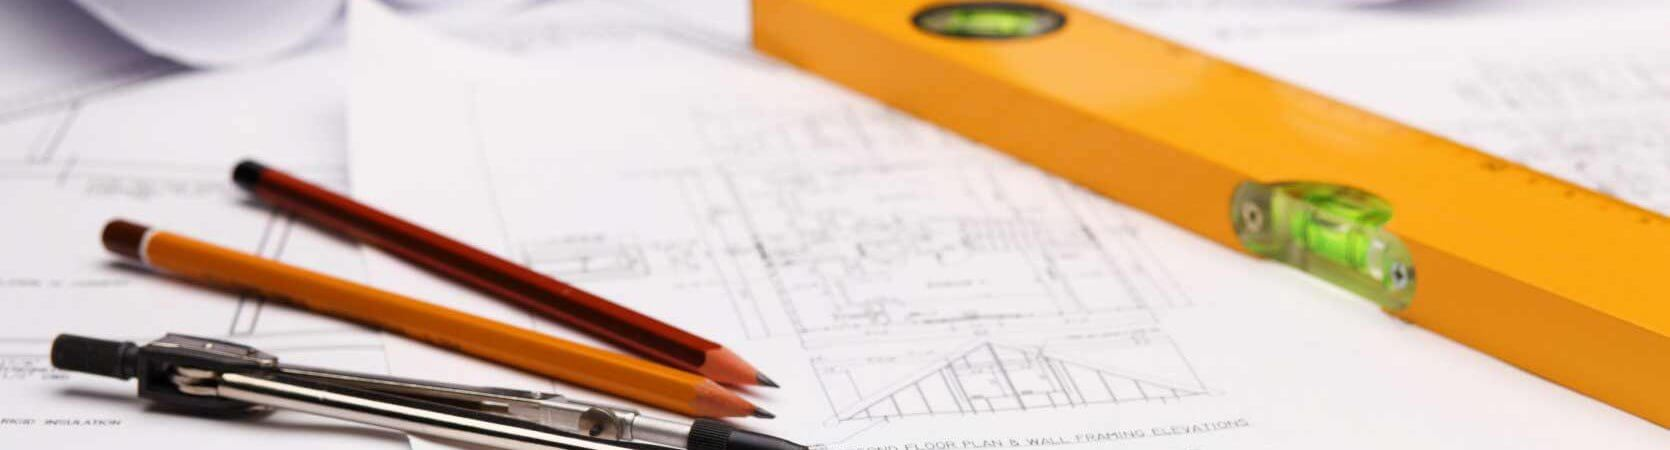 Process Engineering Design services at EAD